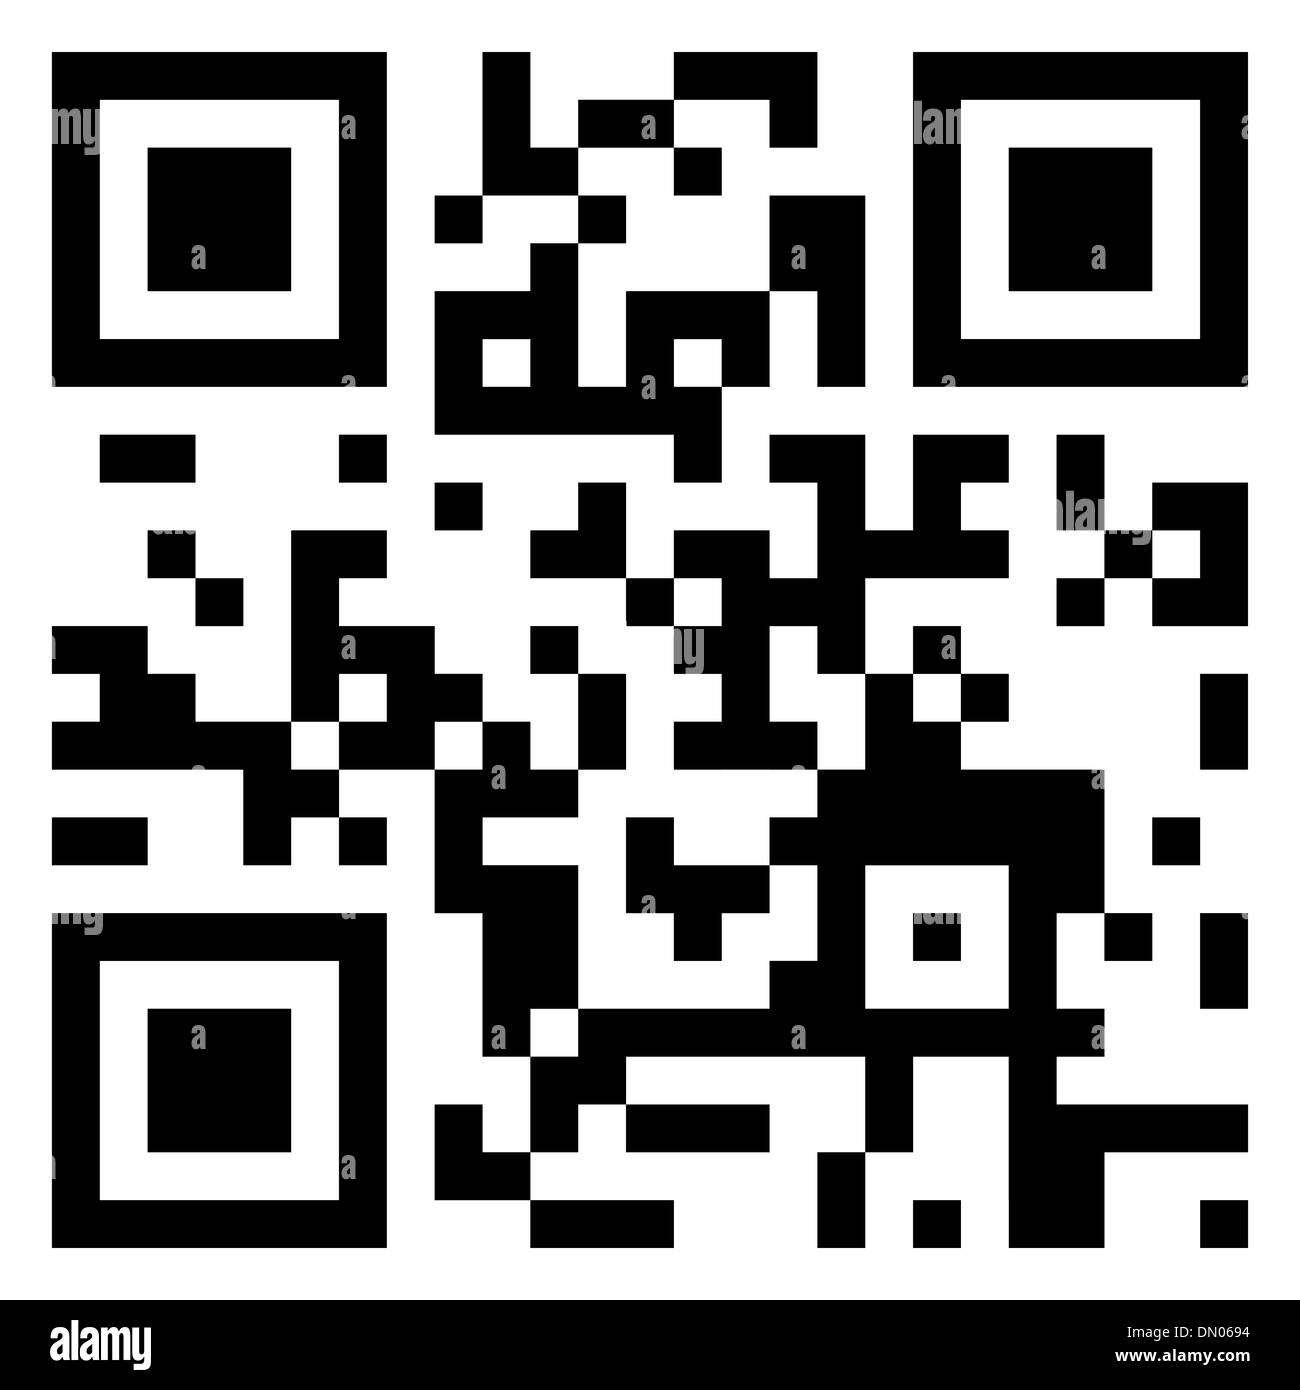 House for Sale data in qr code. EPS 8 - Stock Image